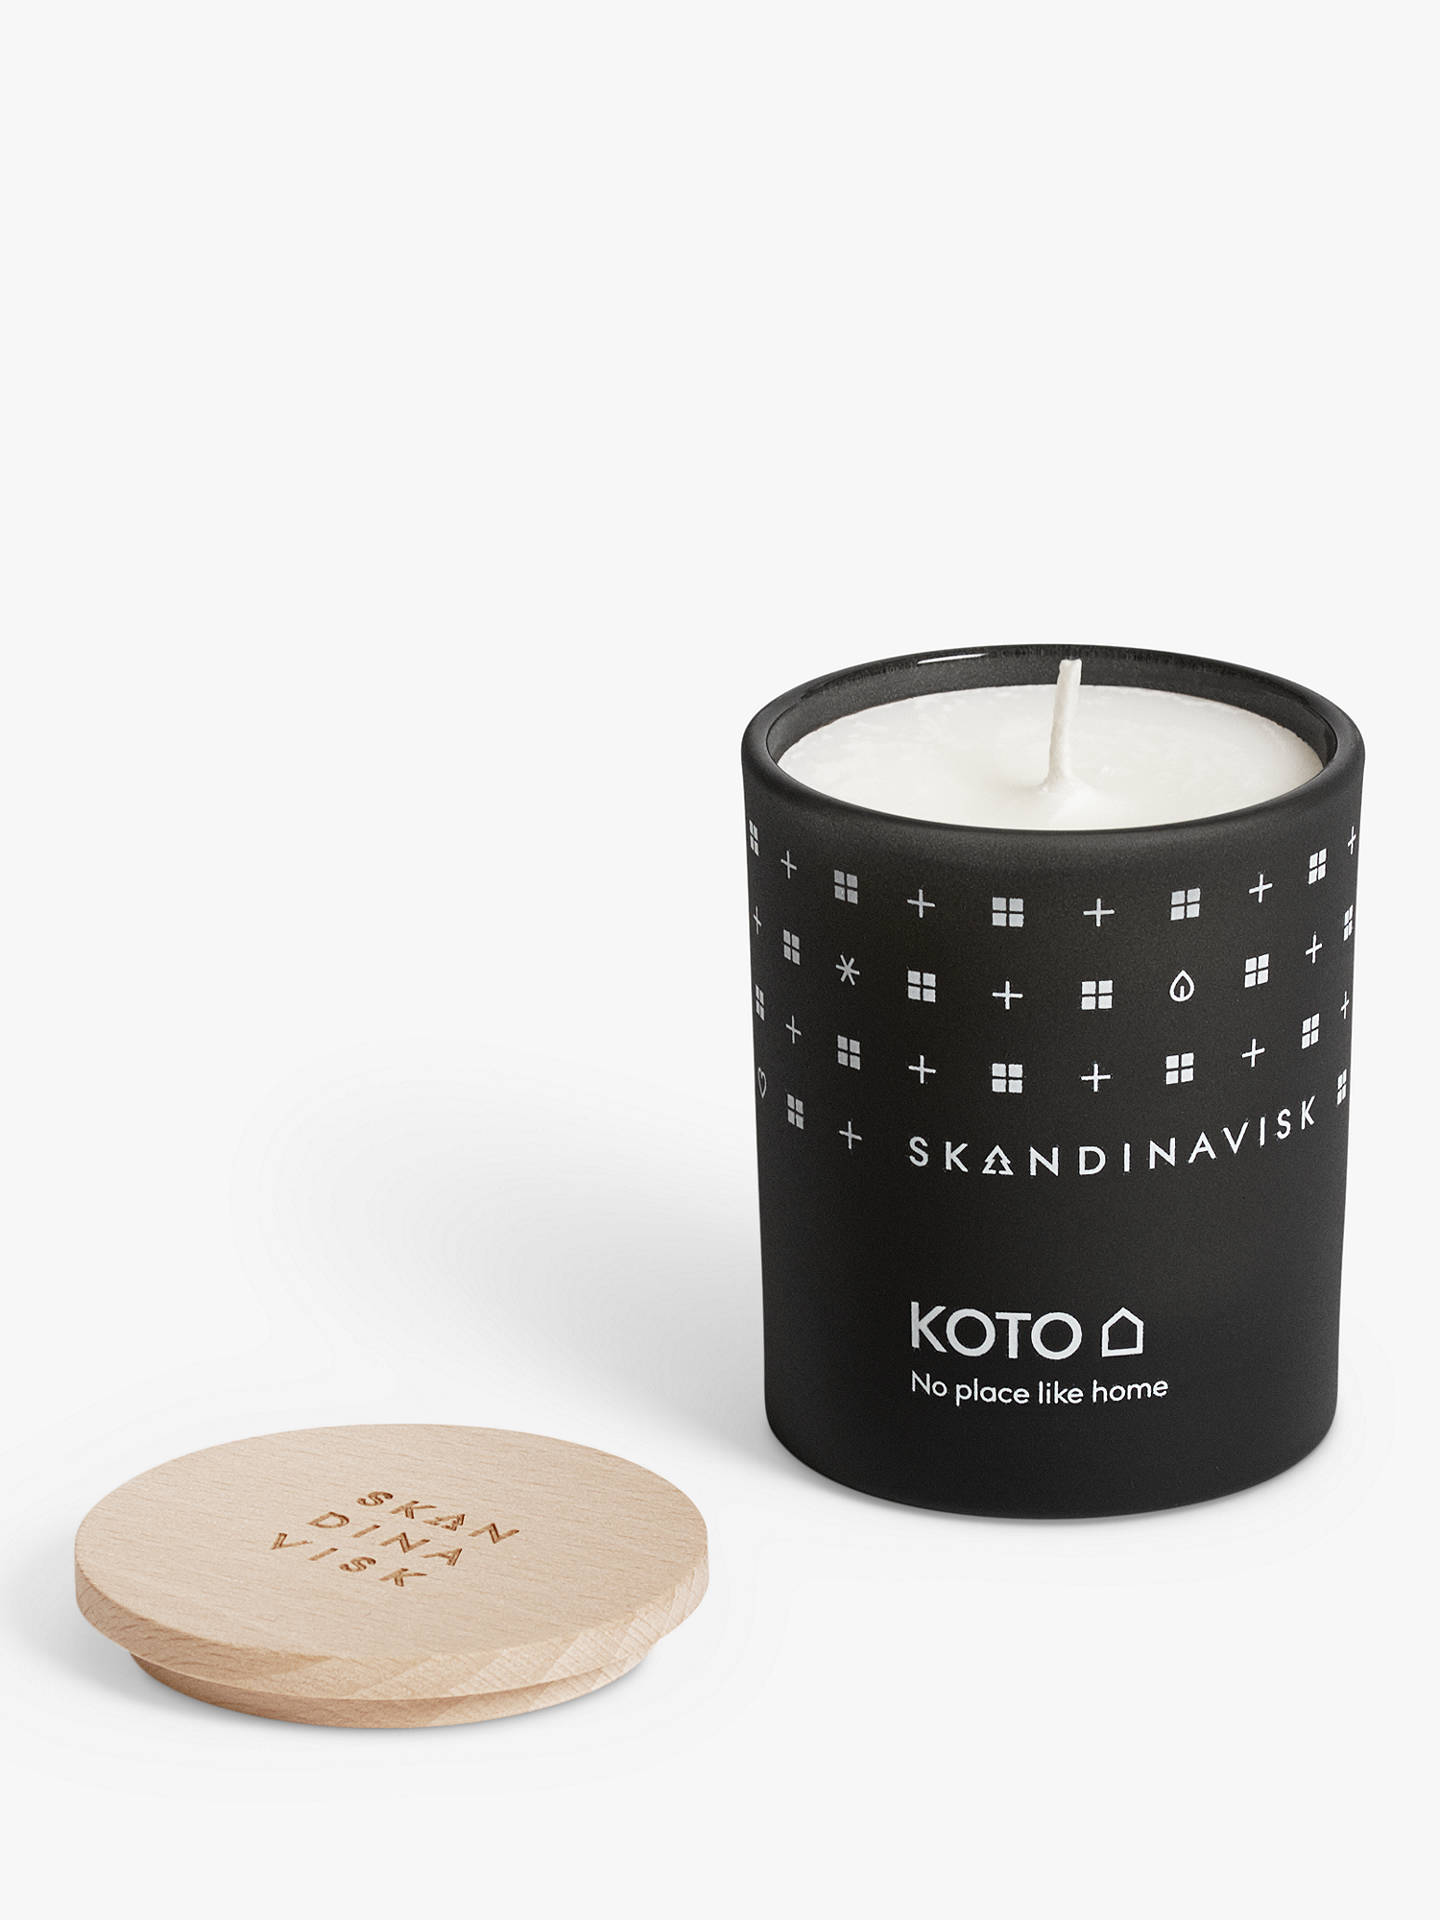 BuySKANDINAVISK Koto Mini Scented Candle with Lid Online at johnlewis.com